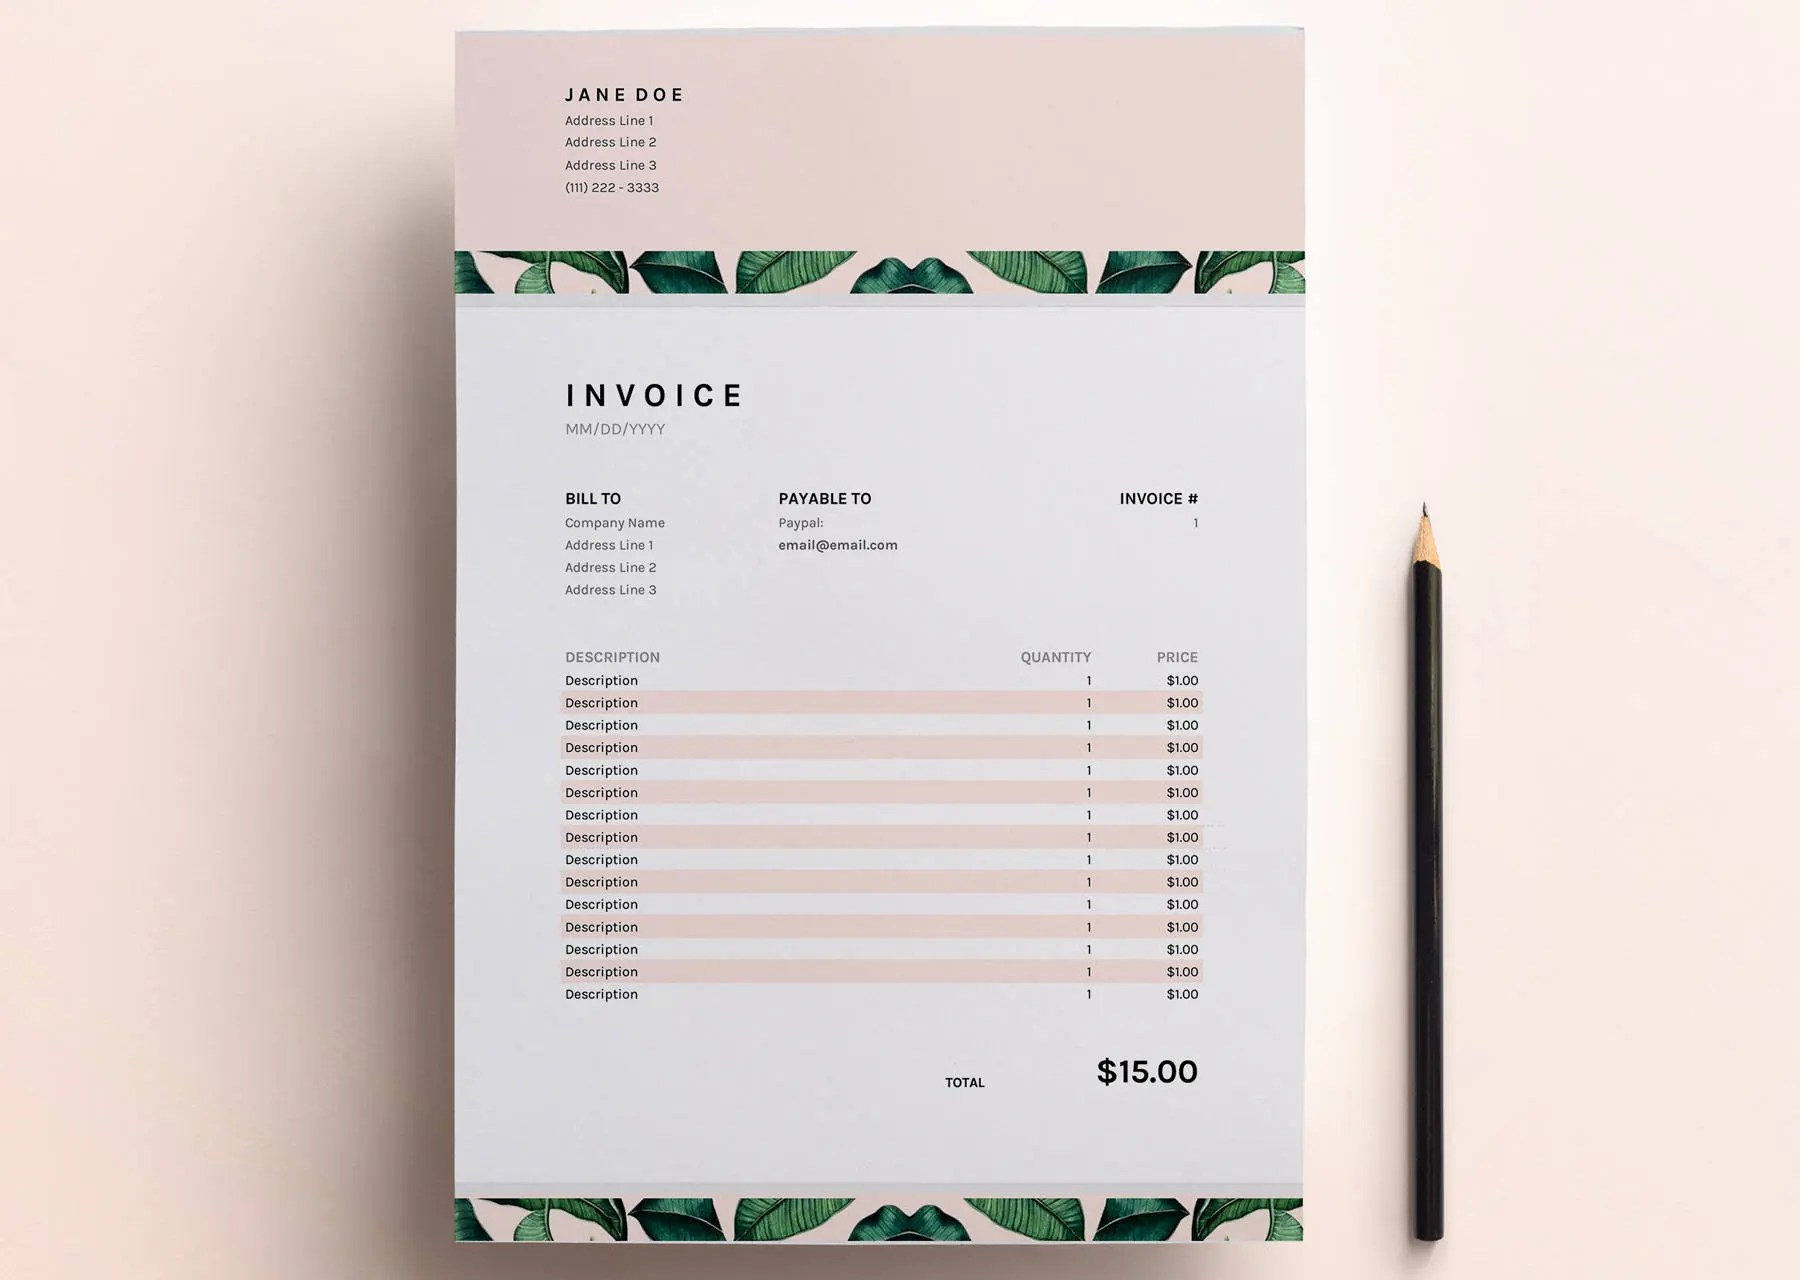 Invoice Template Business Invoice Spreadsheet Google Sheets - google invoices templates